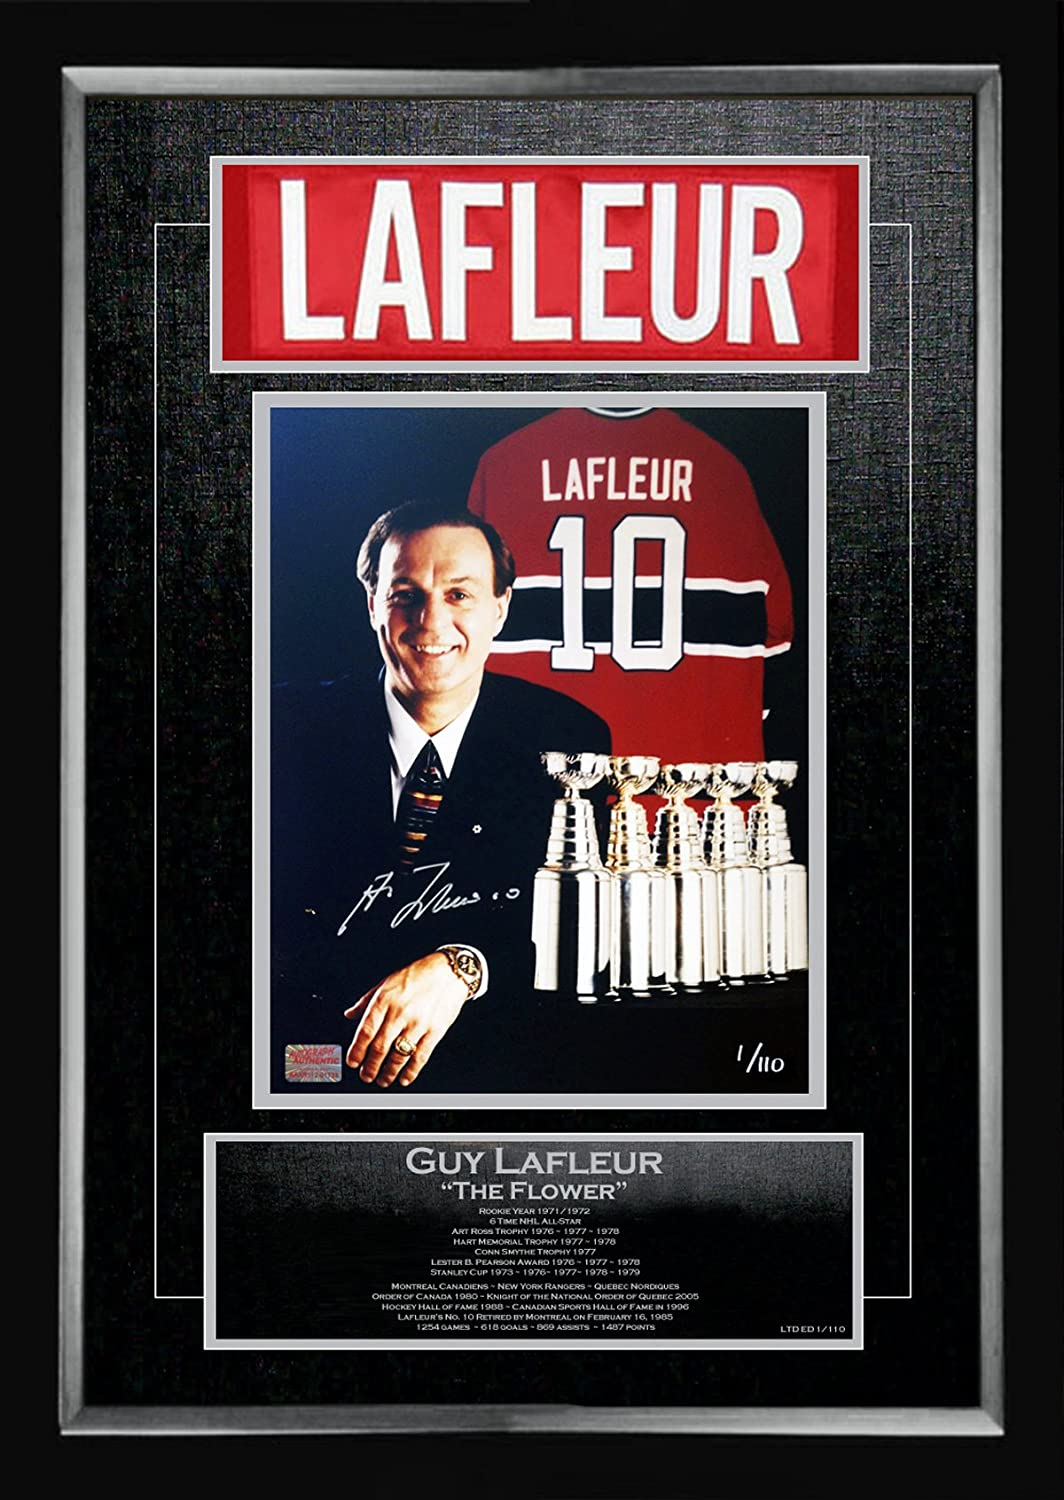 Guy Lafleur Career Collectible Namebar Ltd Ed  1 of 110  Museum Framed